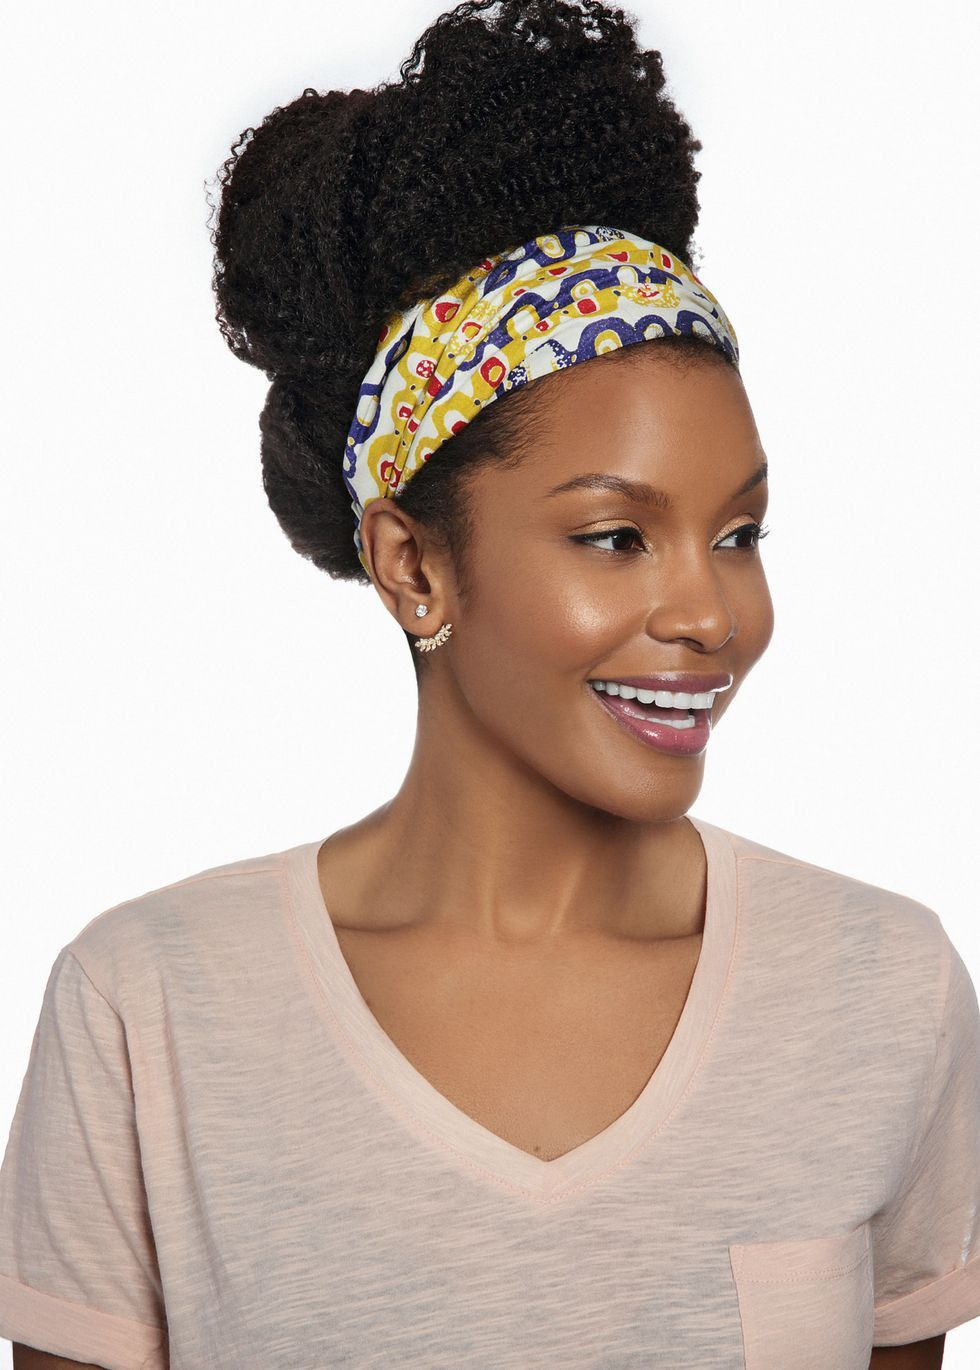 Yellow Purple African Print Turban Headband is lined in white satin to  prevent friction between the cotton fabric and your fragile hair strands. b5e2d4b0f7a